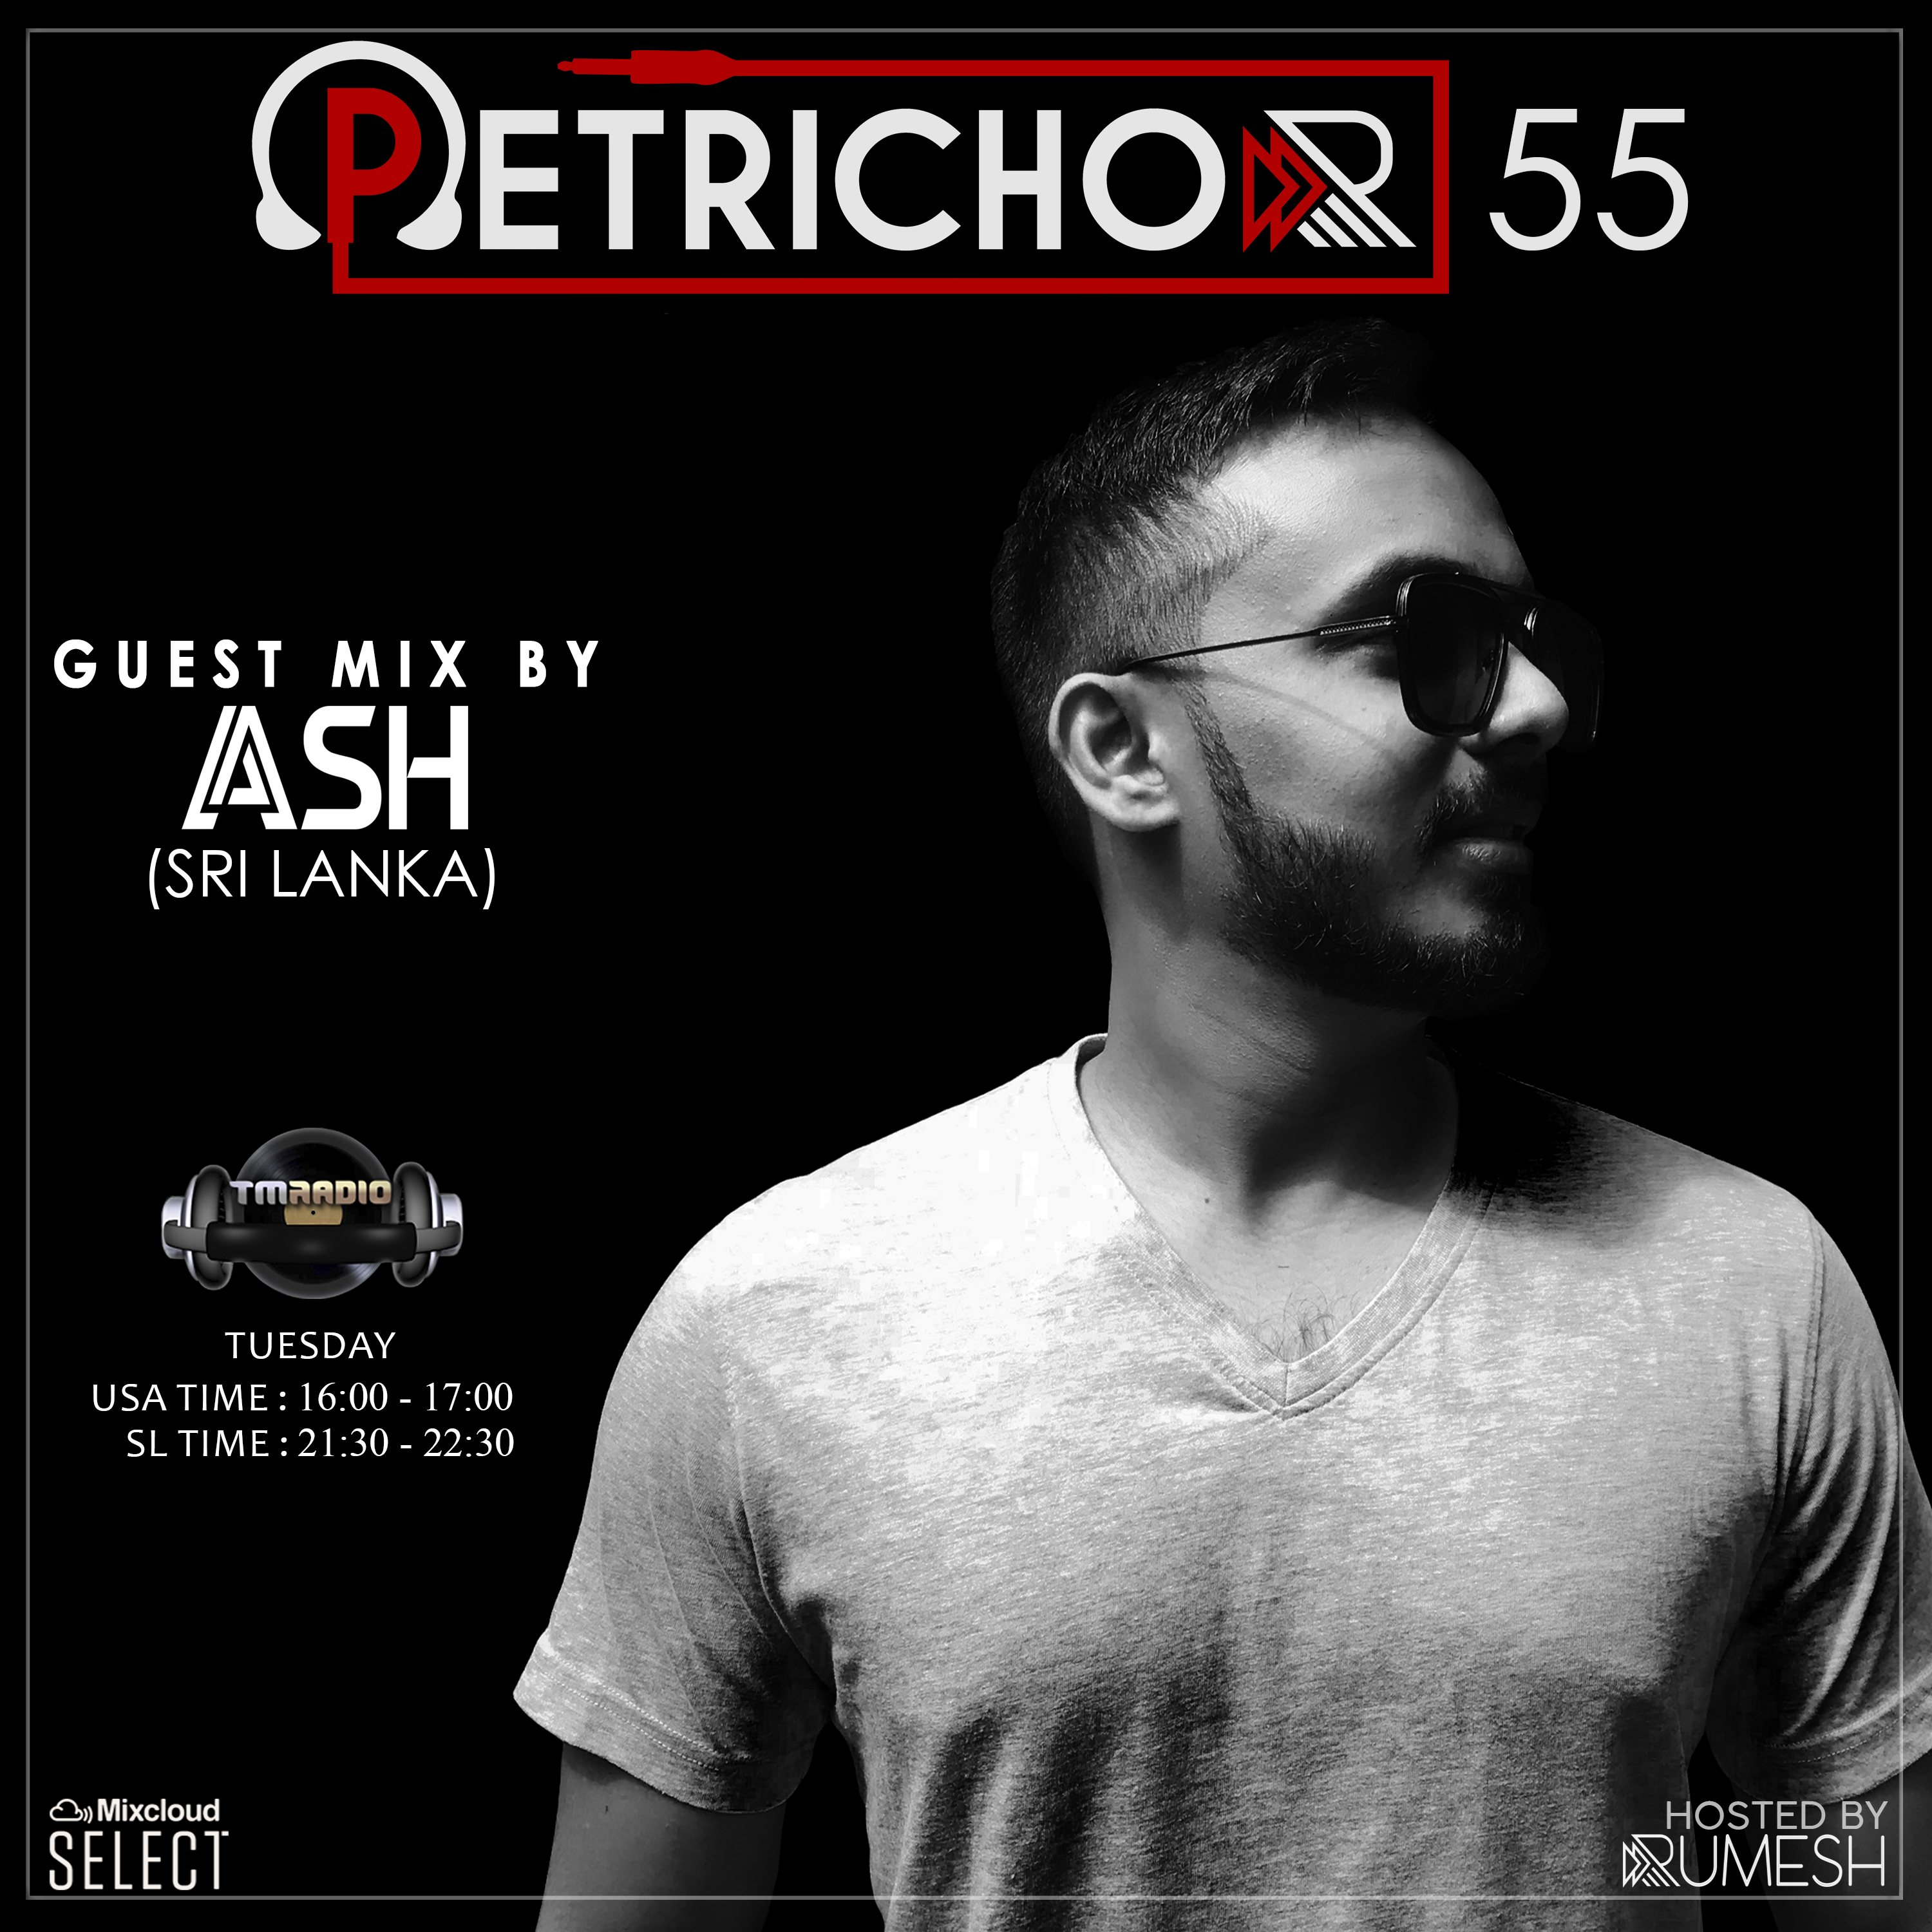 Petrichor 55 guest mix by ASH (Sri Lanka) (from November 26th, 2019)